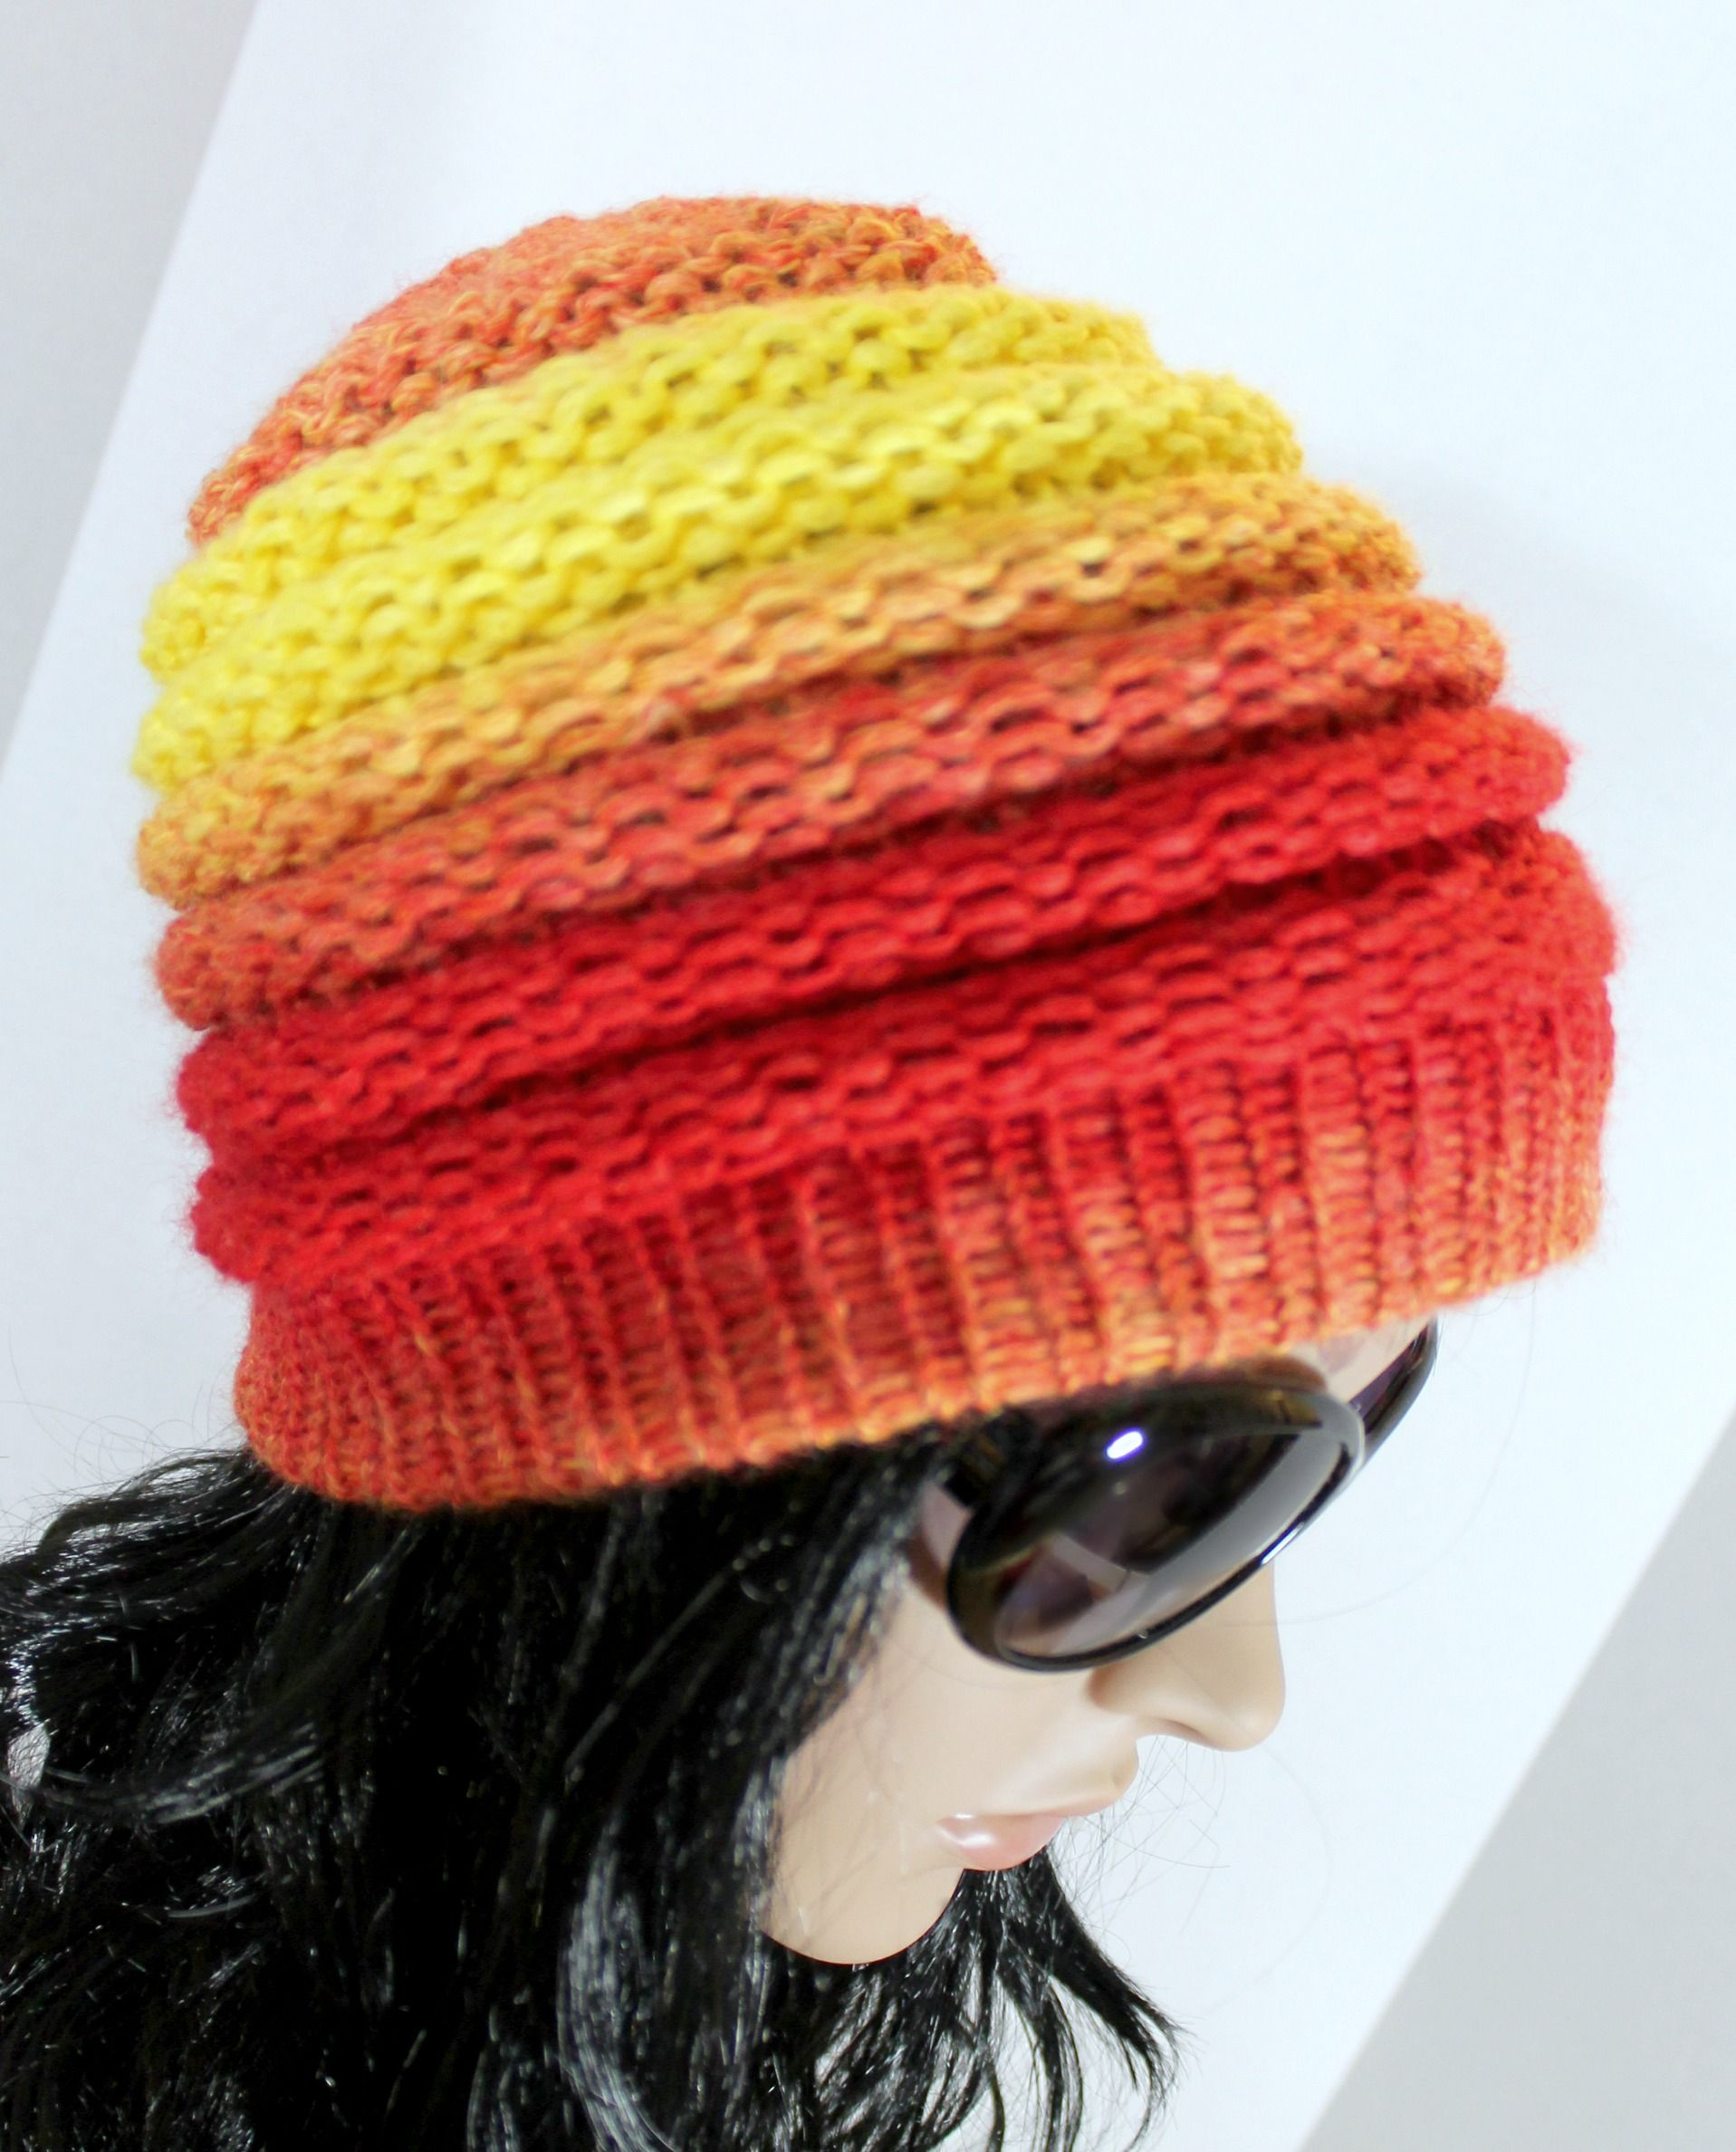 Ombre beanie pattern free loom knit hat pattern for extra large ombre beanie pattern free loom knit hat pattern for extra large 40 41 peg bankloansurffo Image collections